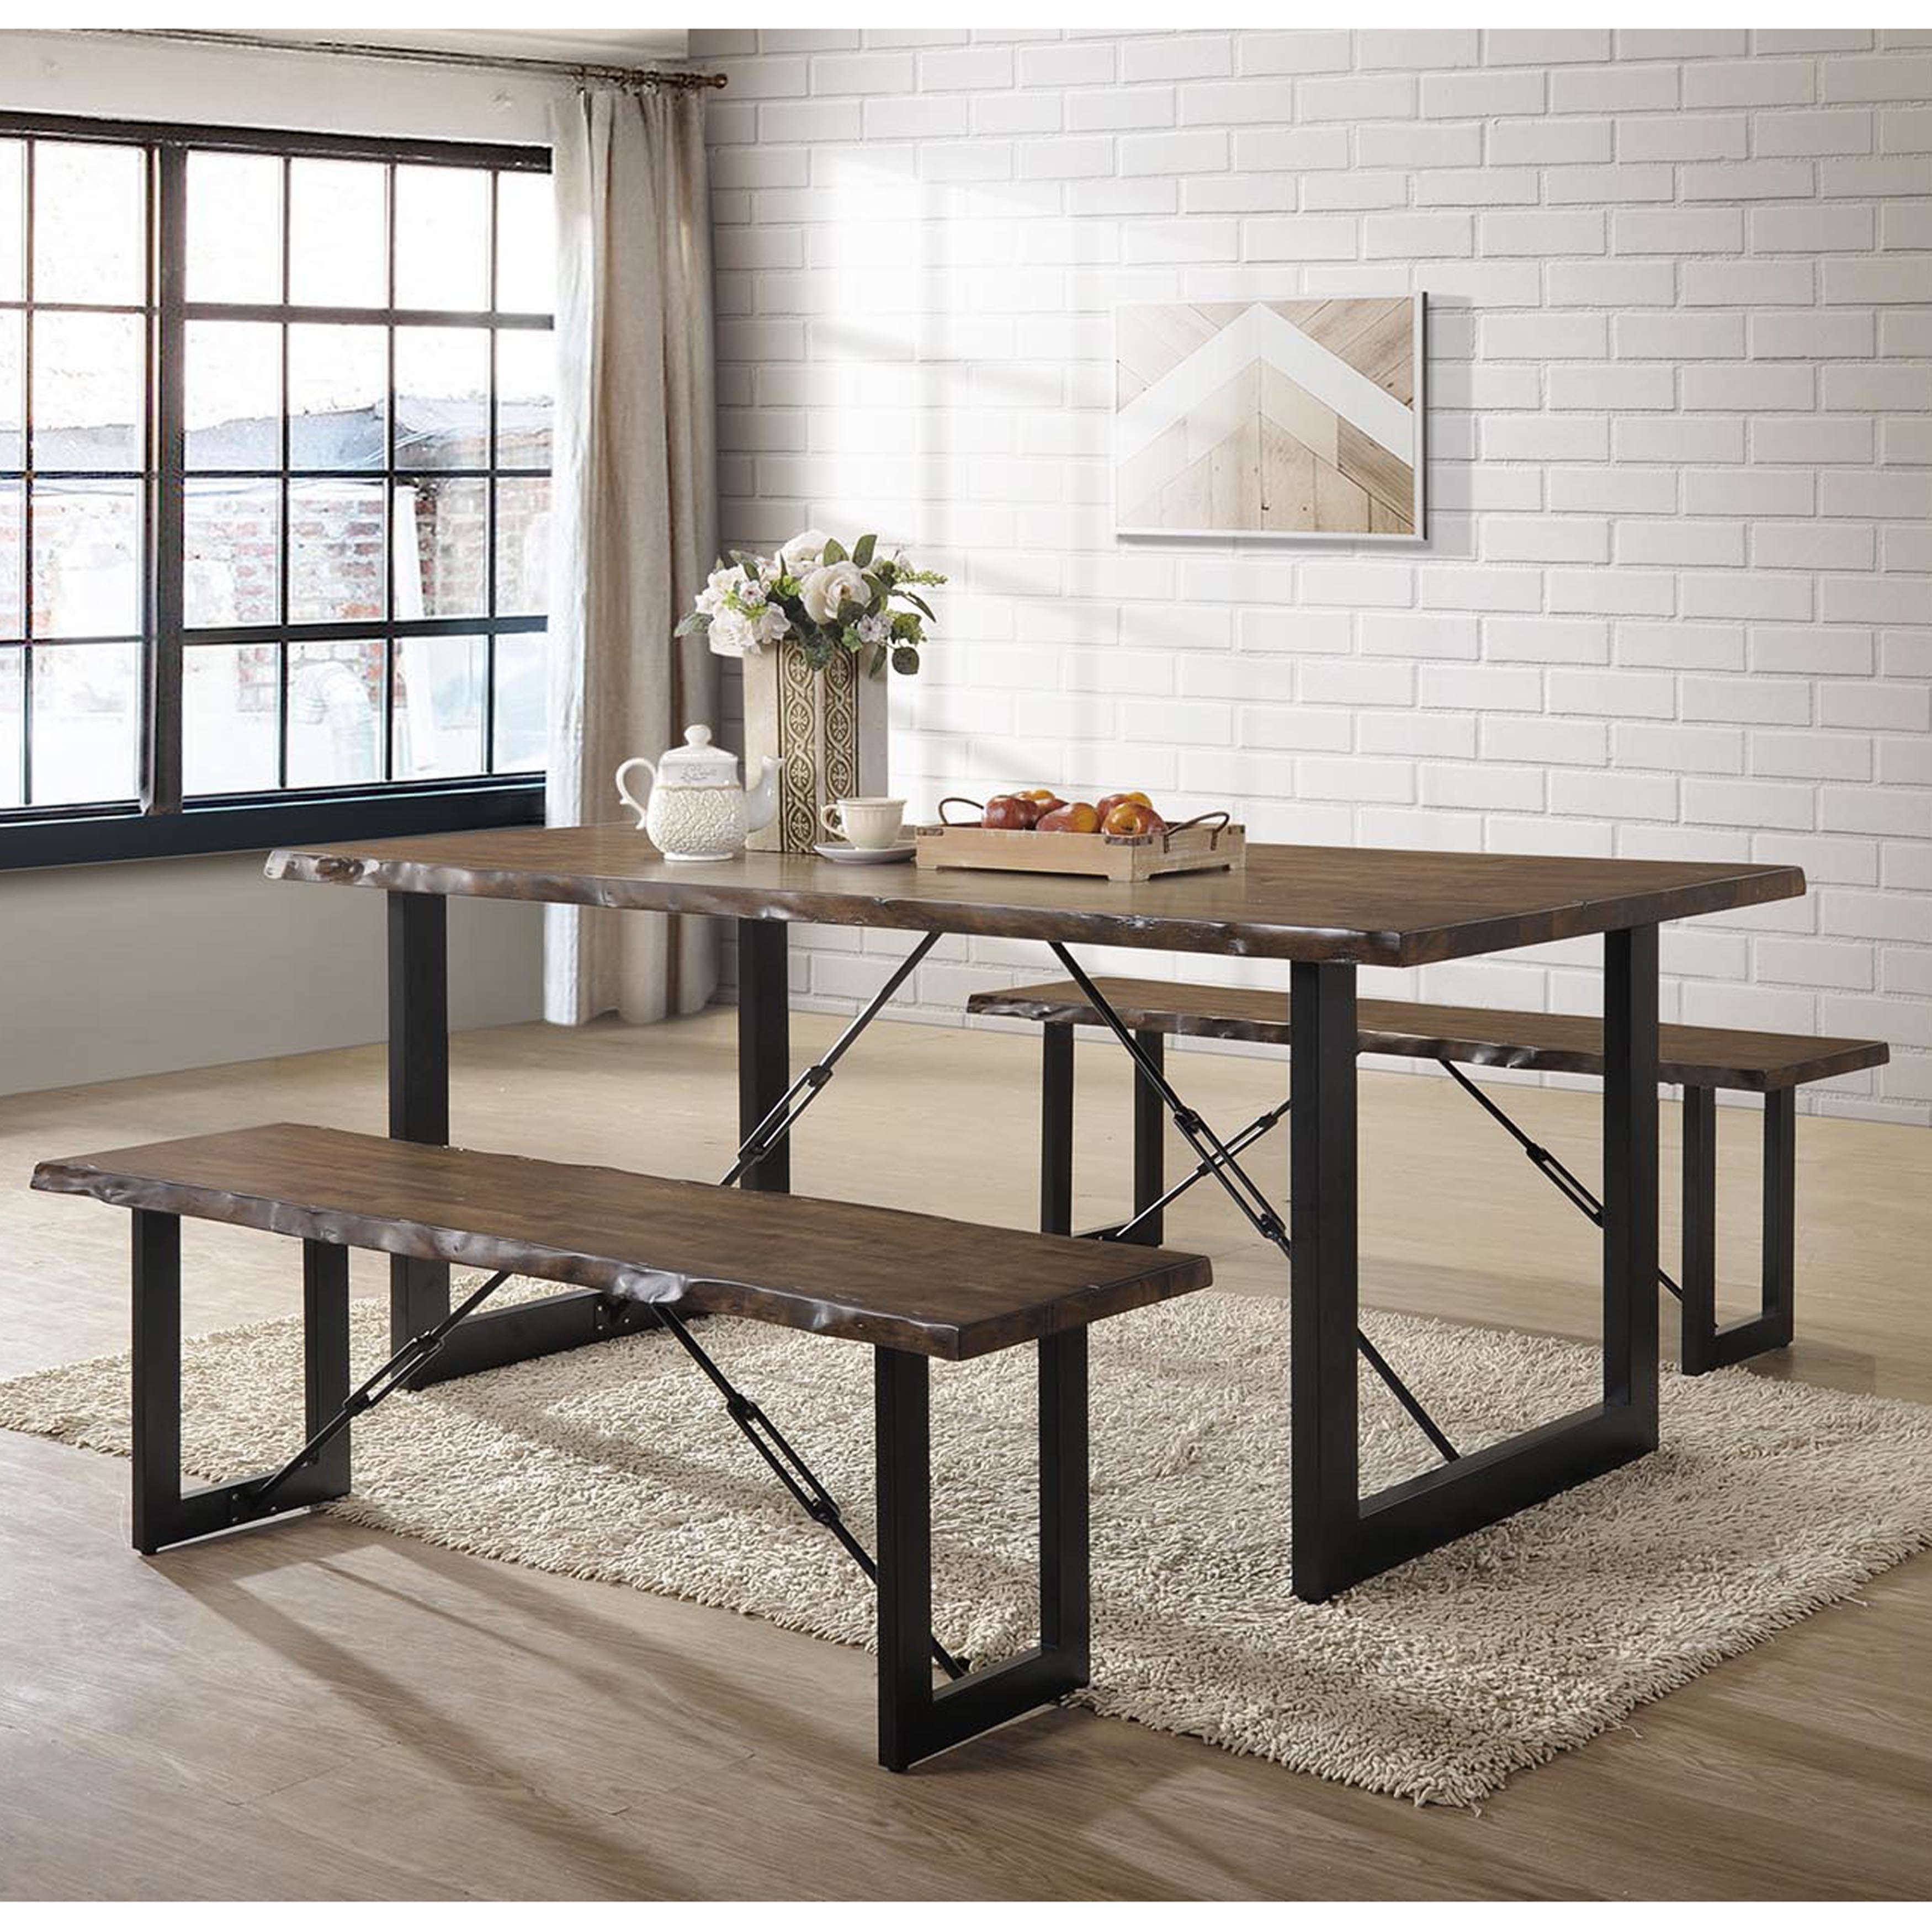 Details about furniture of america terele walnut finish wood rustic industrial 3 piece dining